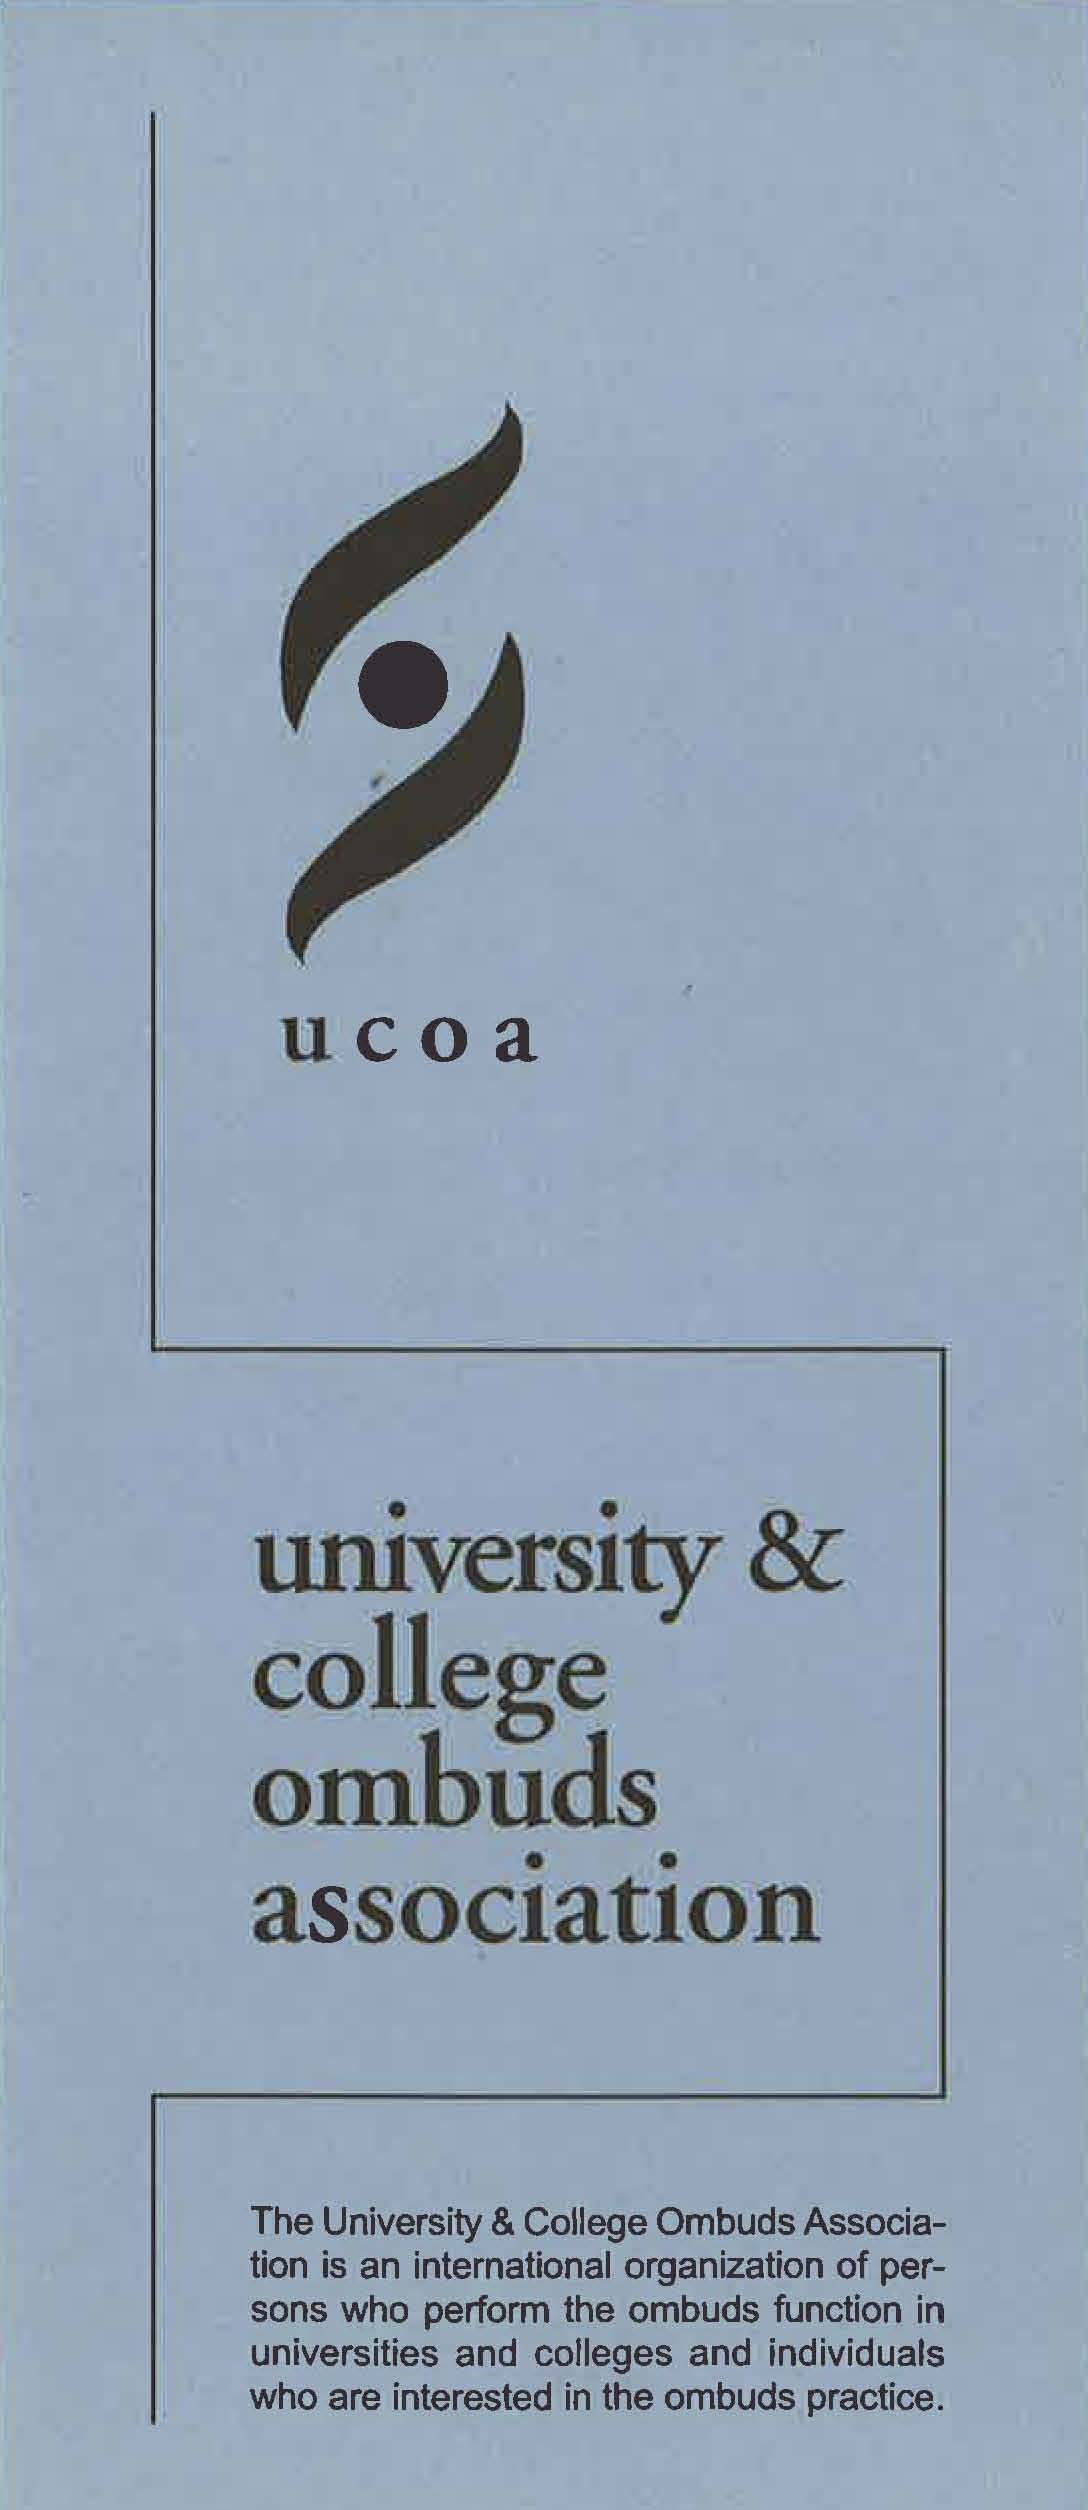 University and College Ombuds Association brochure, undated